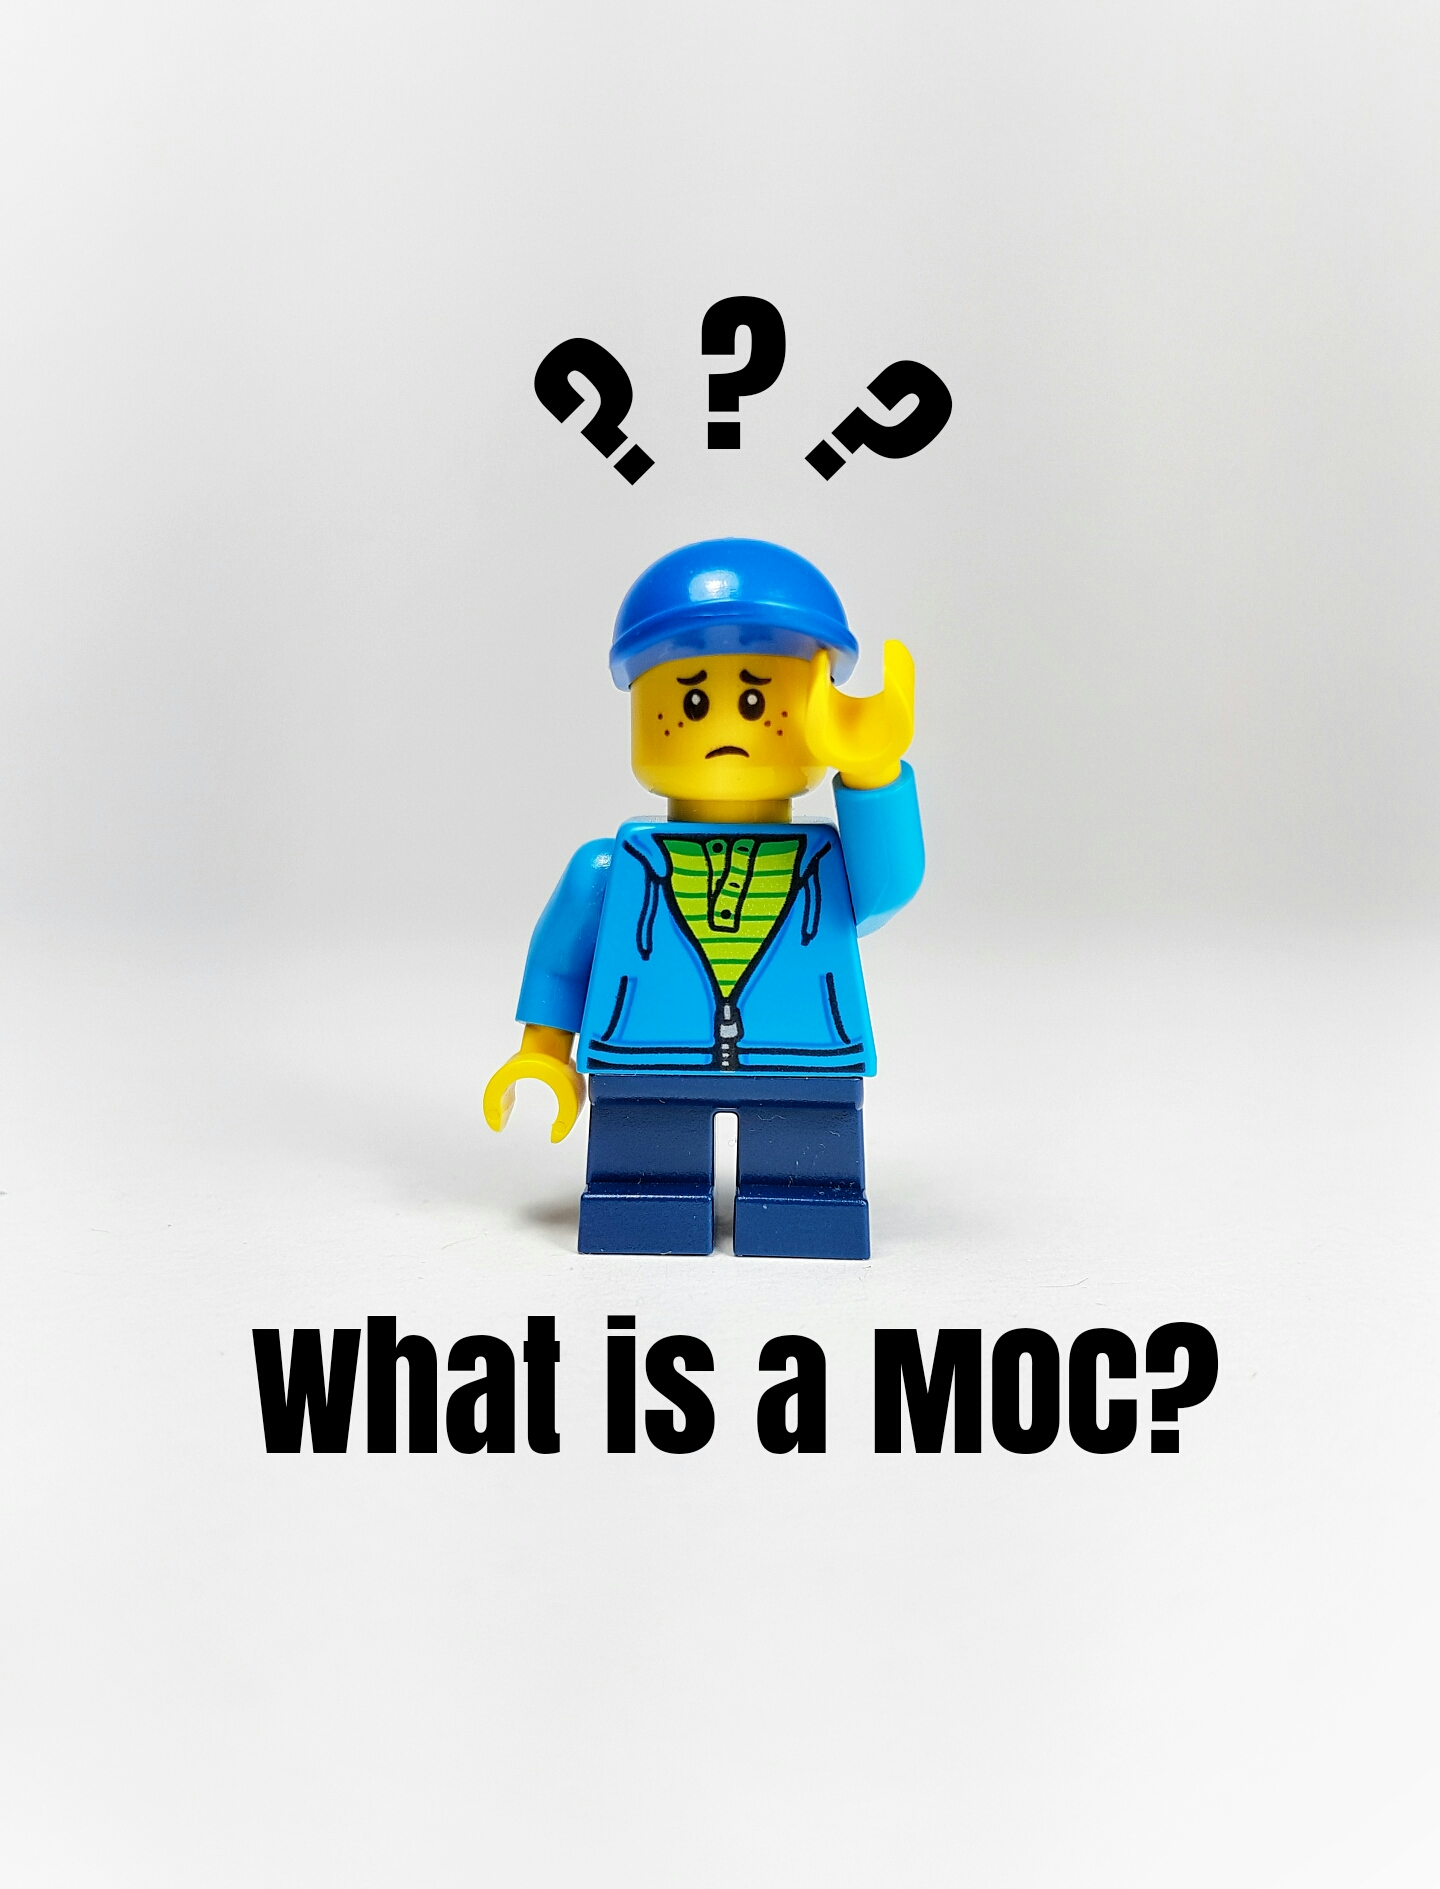 Picture of a confused Lego kid wondering what a MOC is